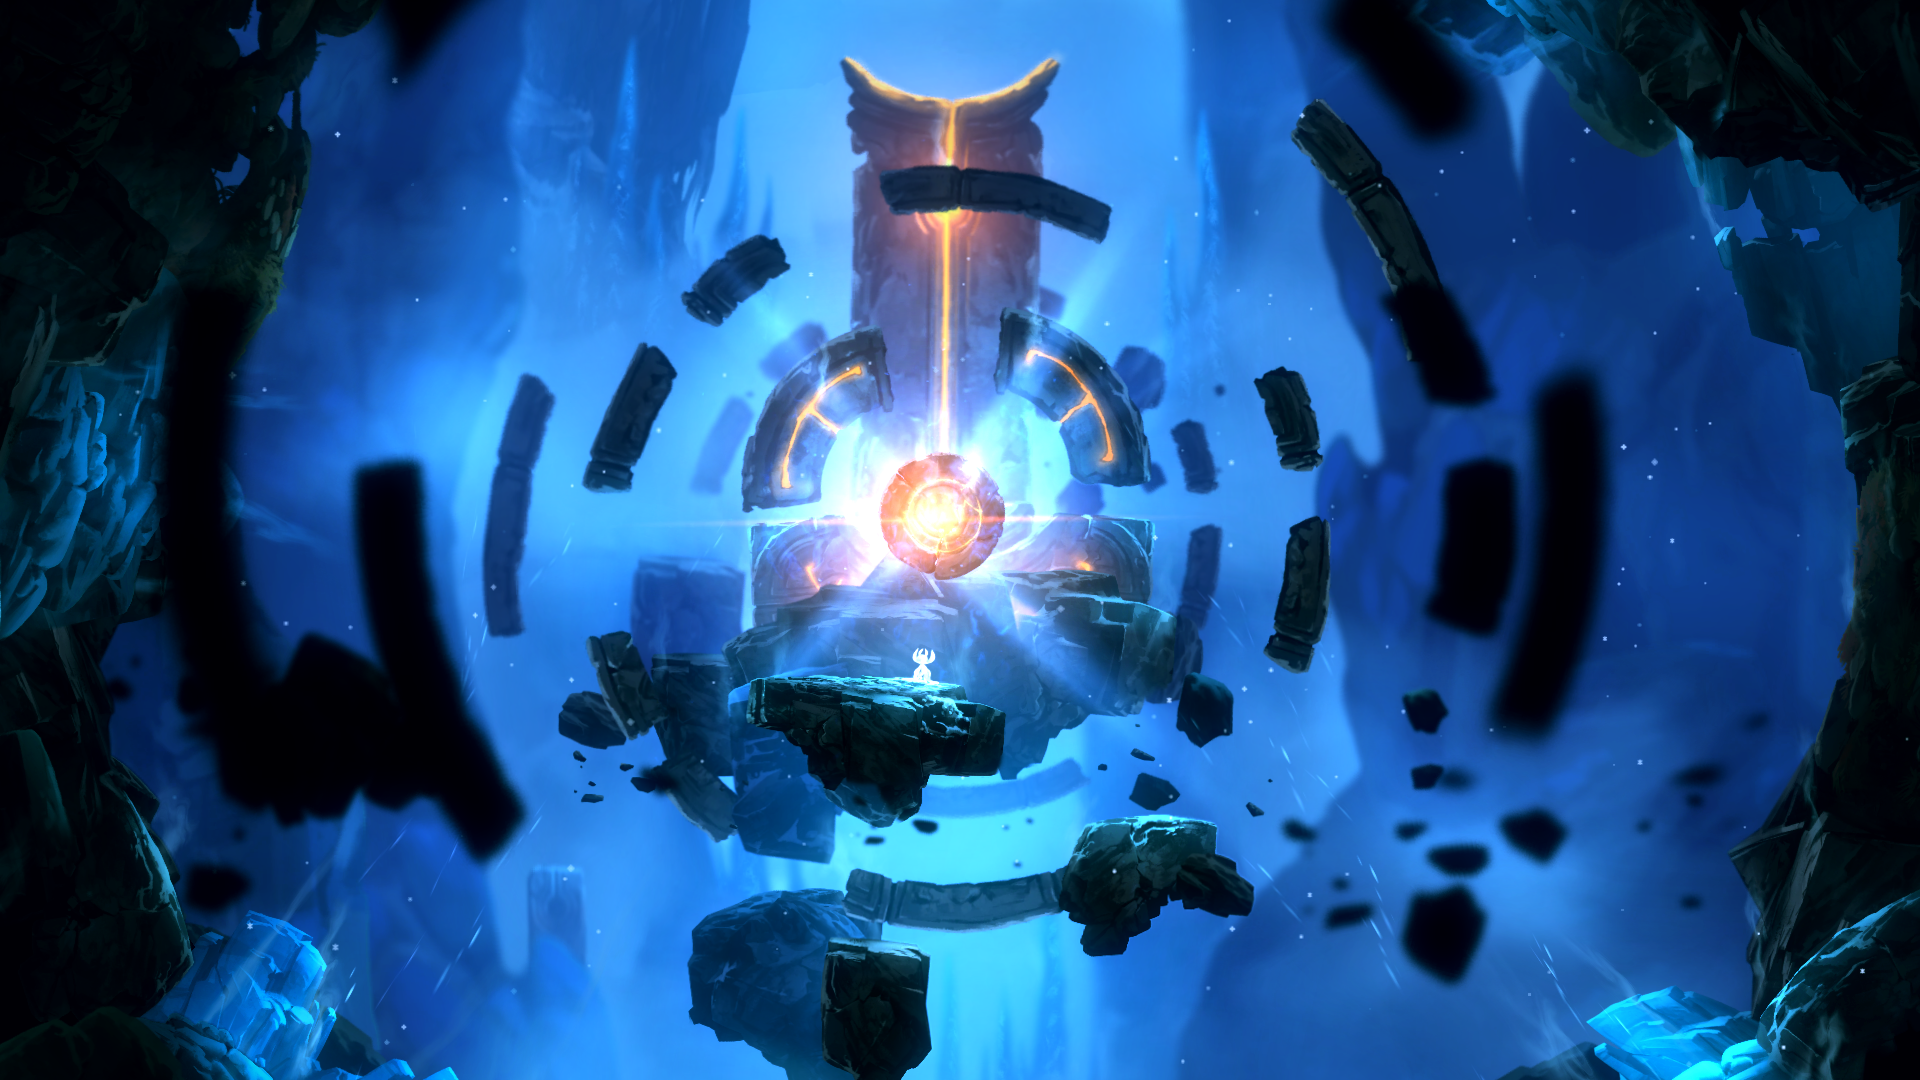 Ori And The Blind Forest Hd Wallpaper: Ori And The Blind Forest